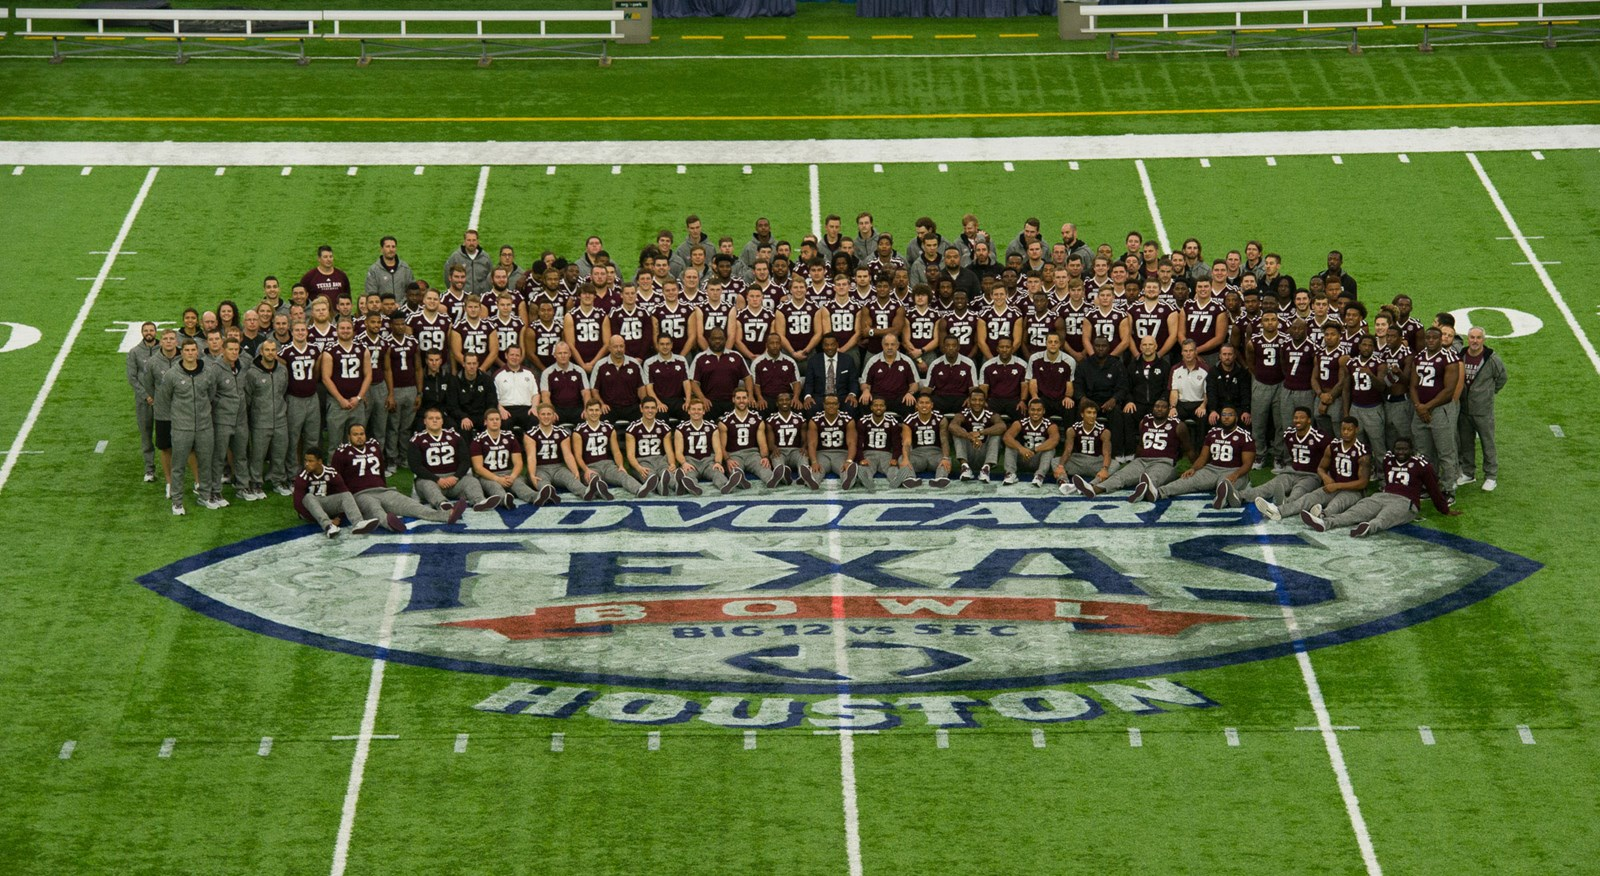 2016 0 Roster Texas A M University Athletics Home Of The 12th Man